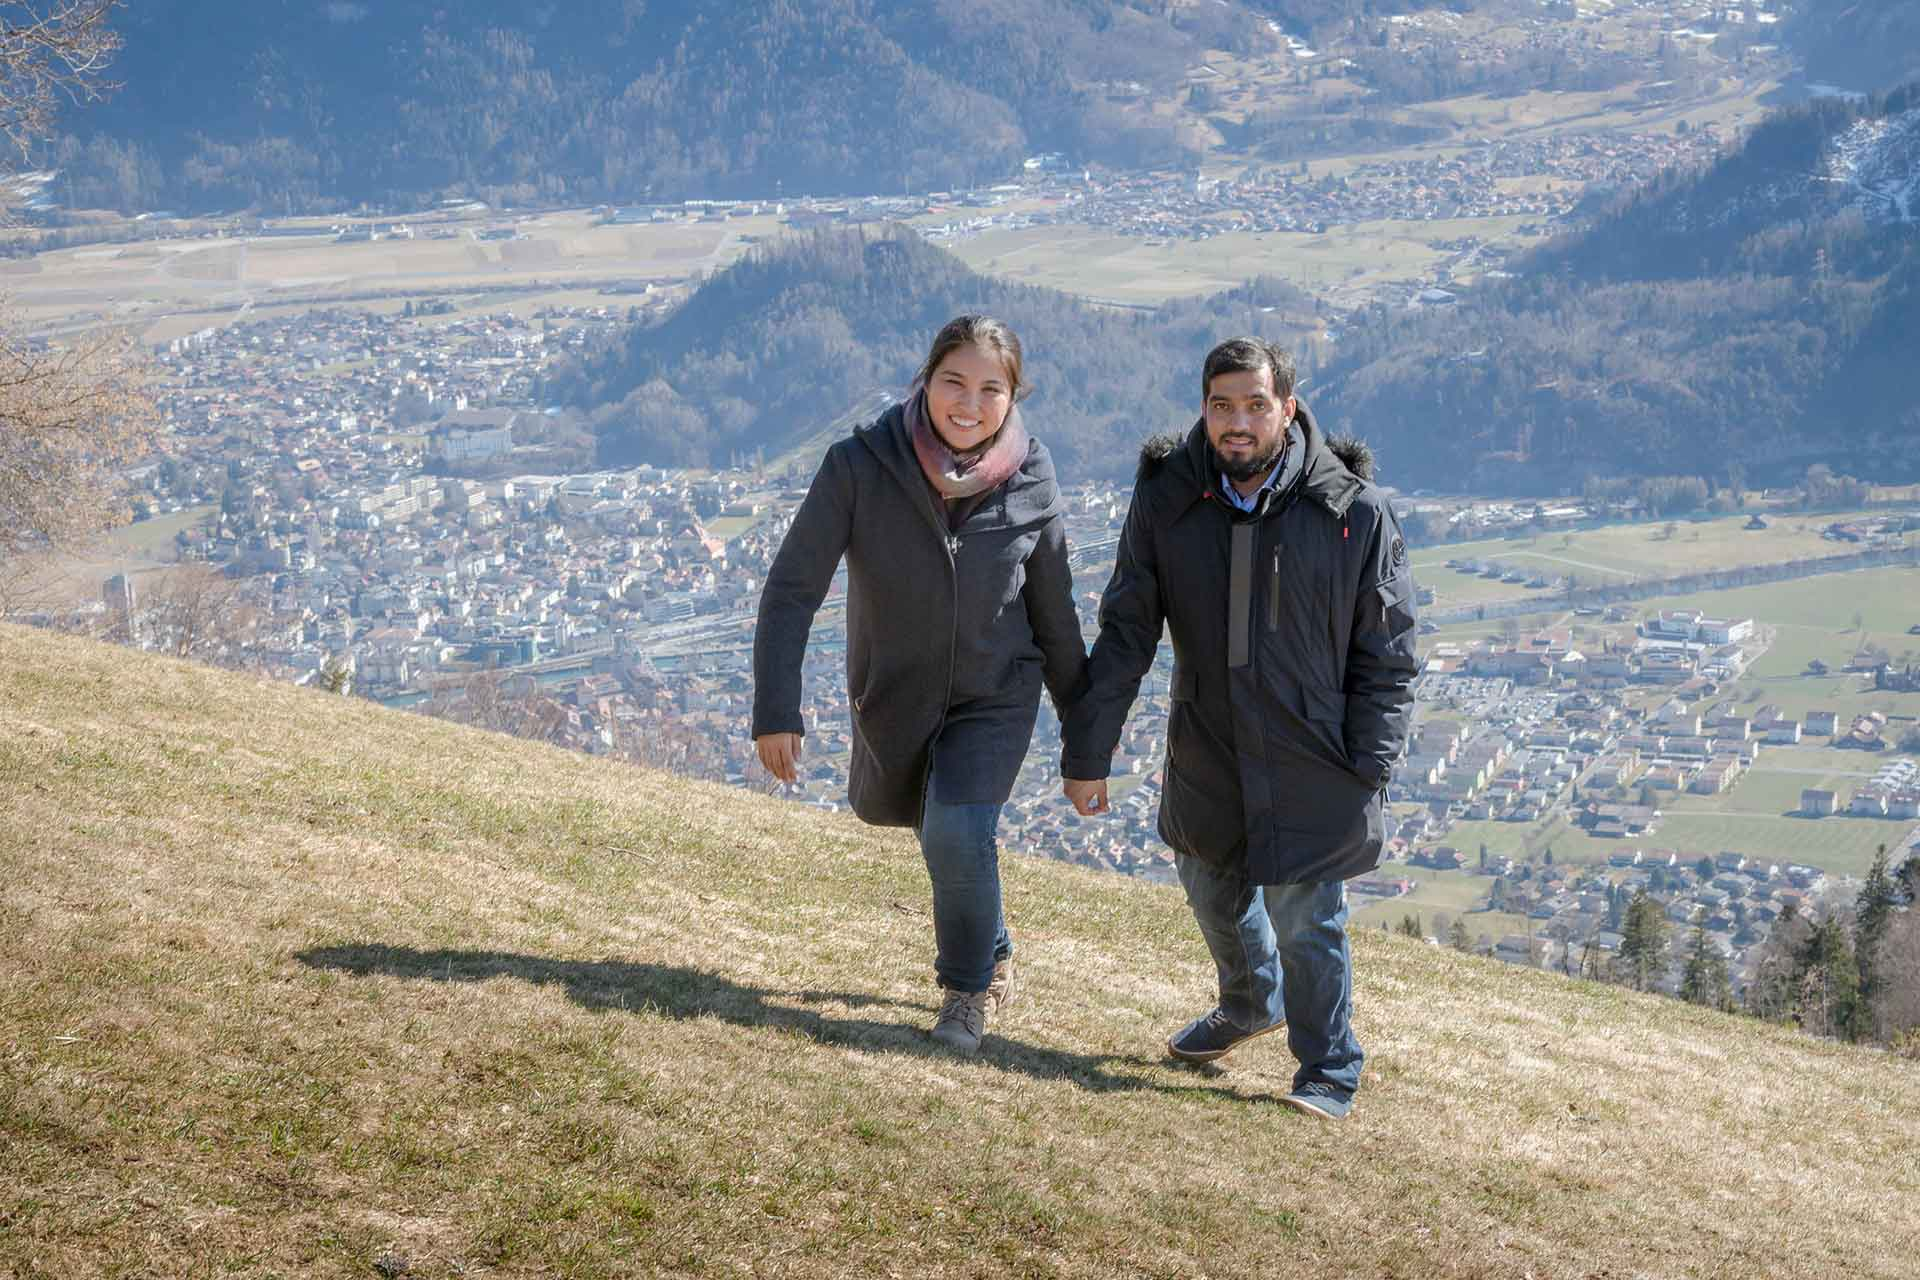 Couples photo shoot in Beatenburg, Switzerland